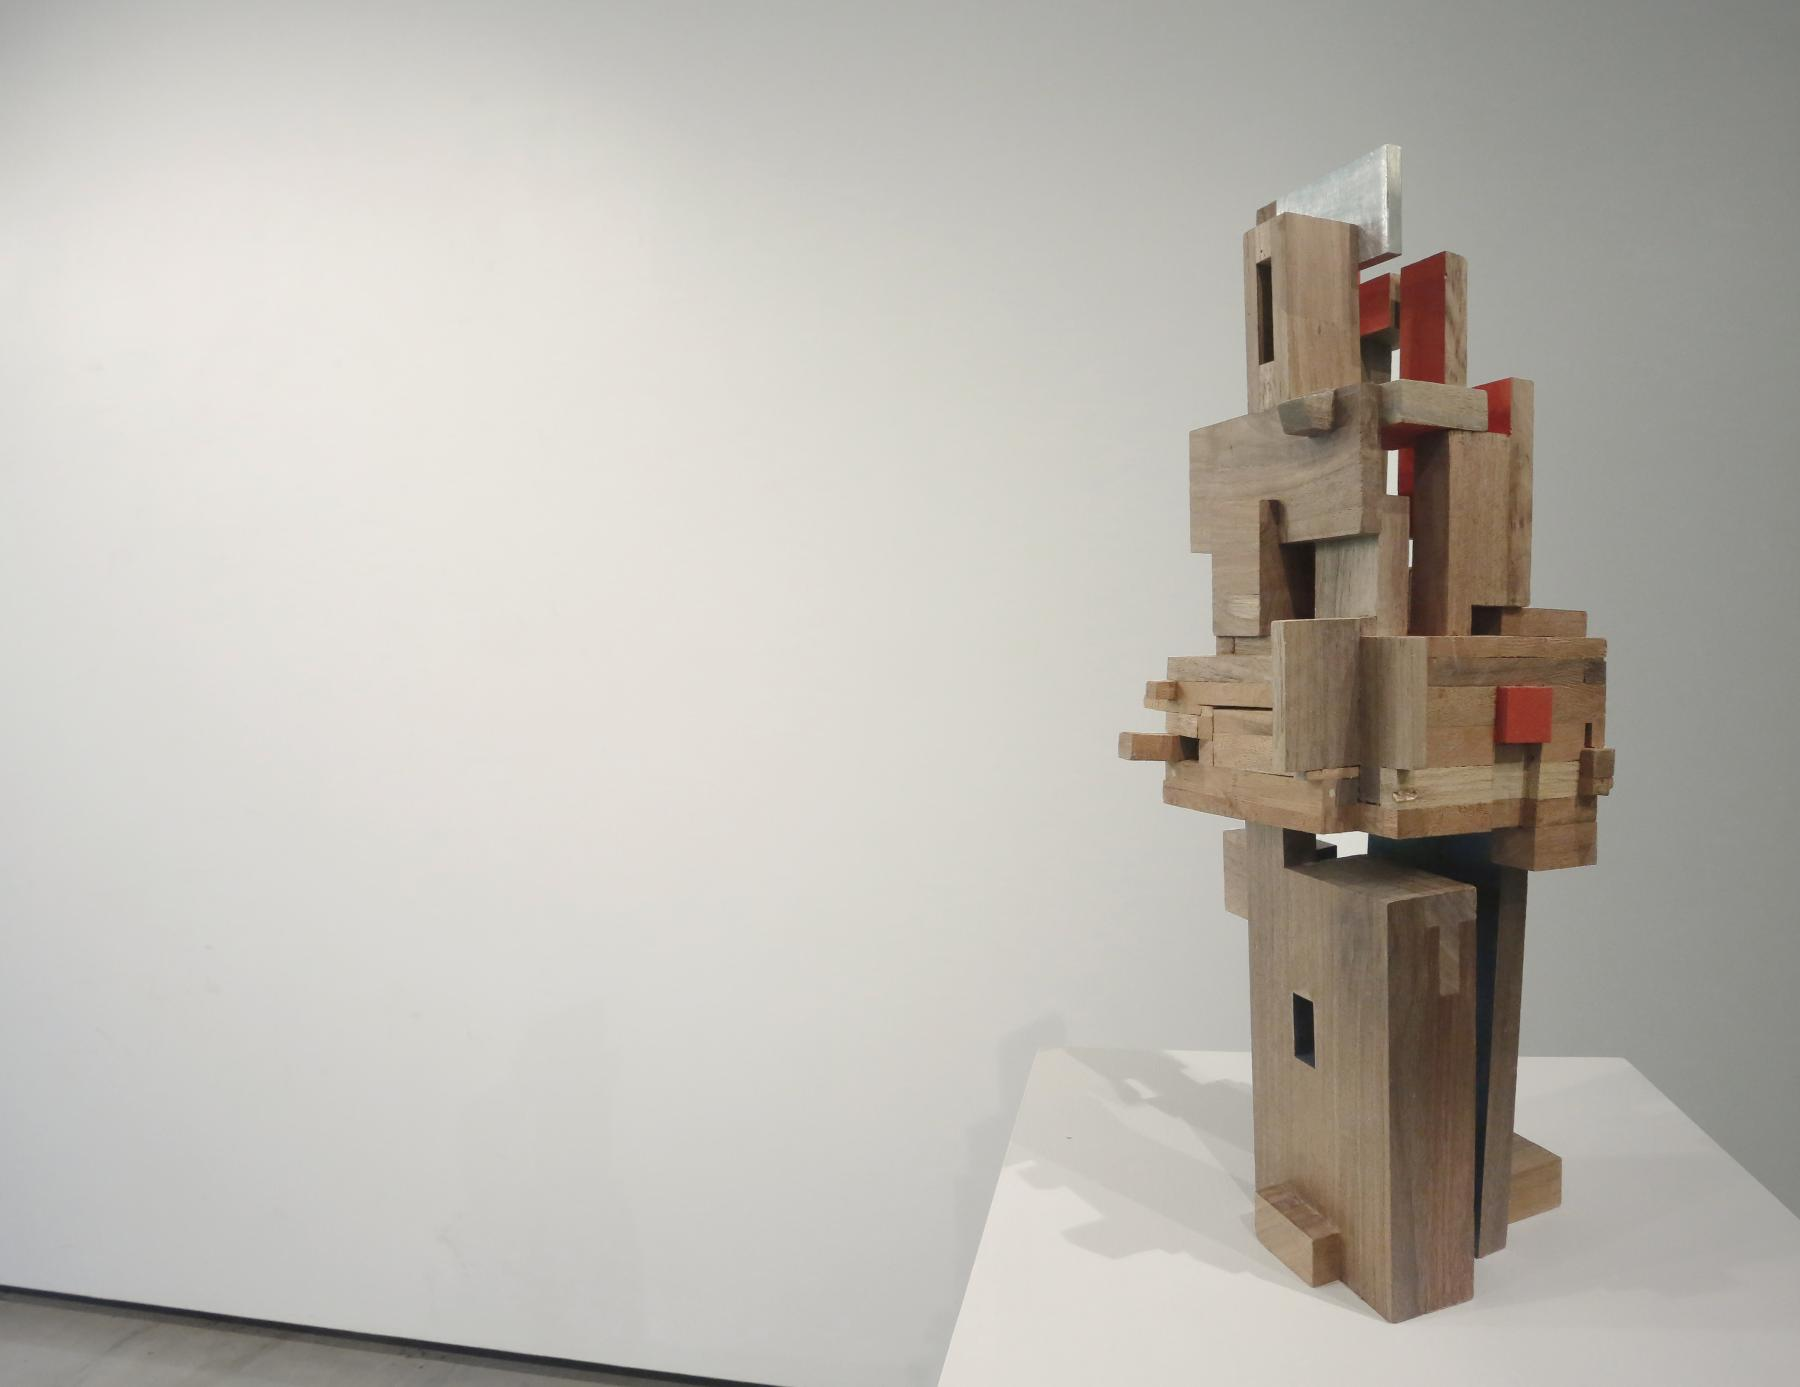 Abstract wooden sculpture piece with various sized rectangular pieces put together displayed on a white pedestal.